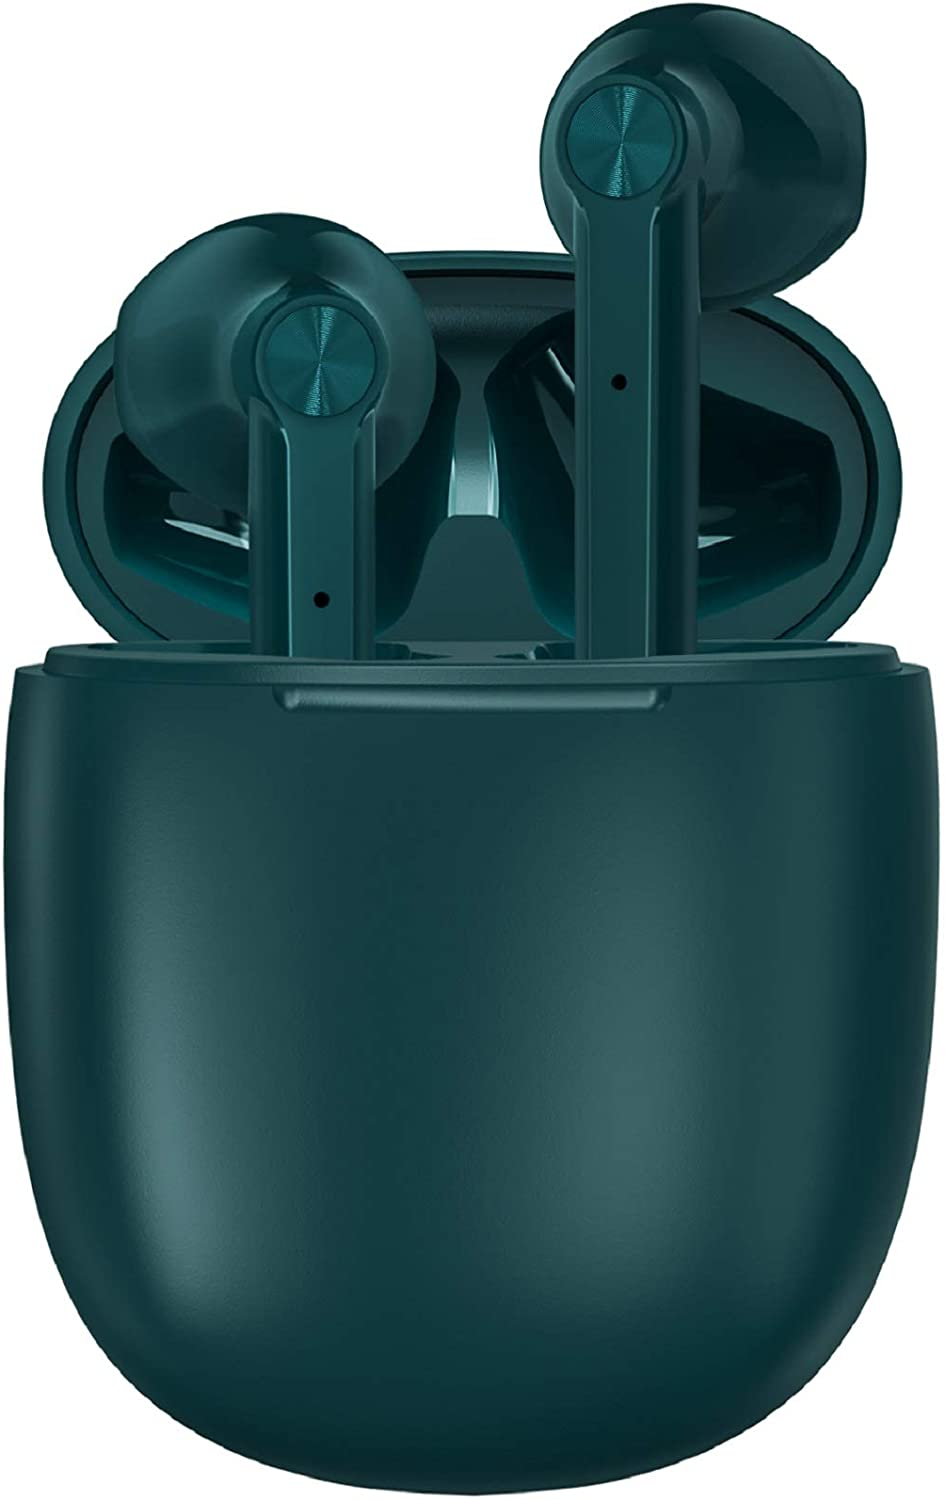 LETSCOM Wireless Earbuds, Bluetooth 5.0 Earbuds in Ear True Wireless Stereo Headphones, 20Hrs Playtime with Charging Case, Bluetooth Earbuds with Built-in Microphone for Sports and Work - Dark Green